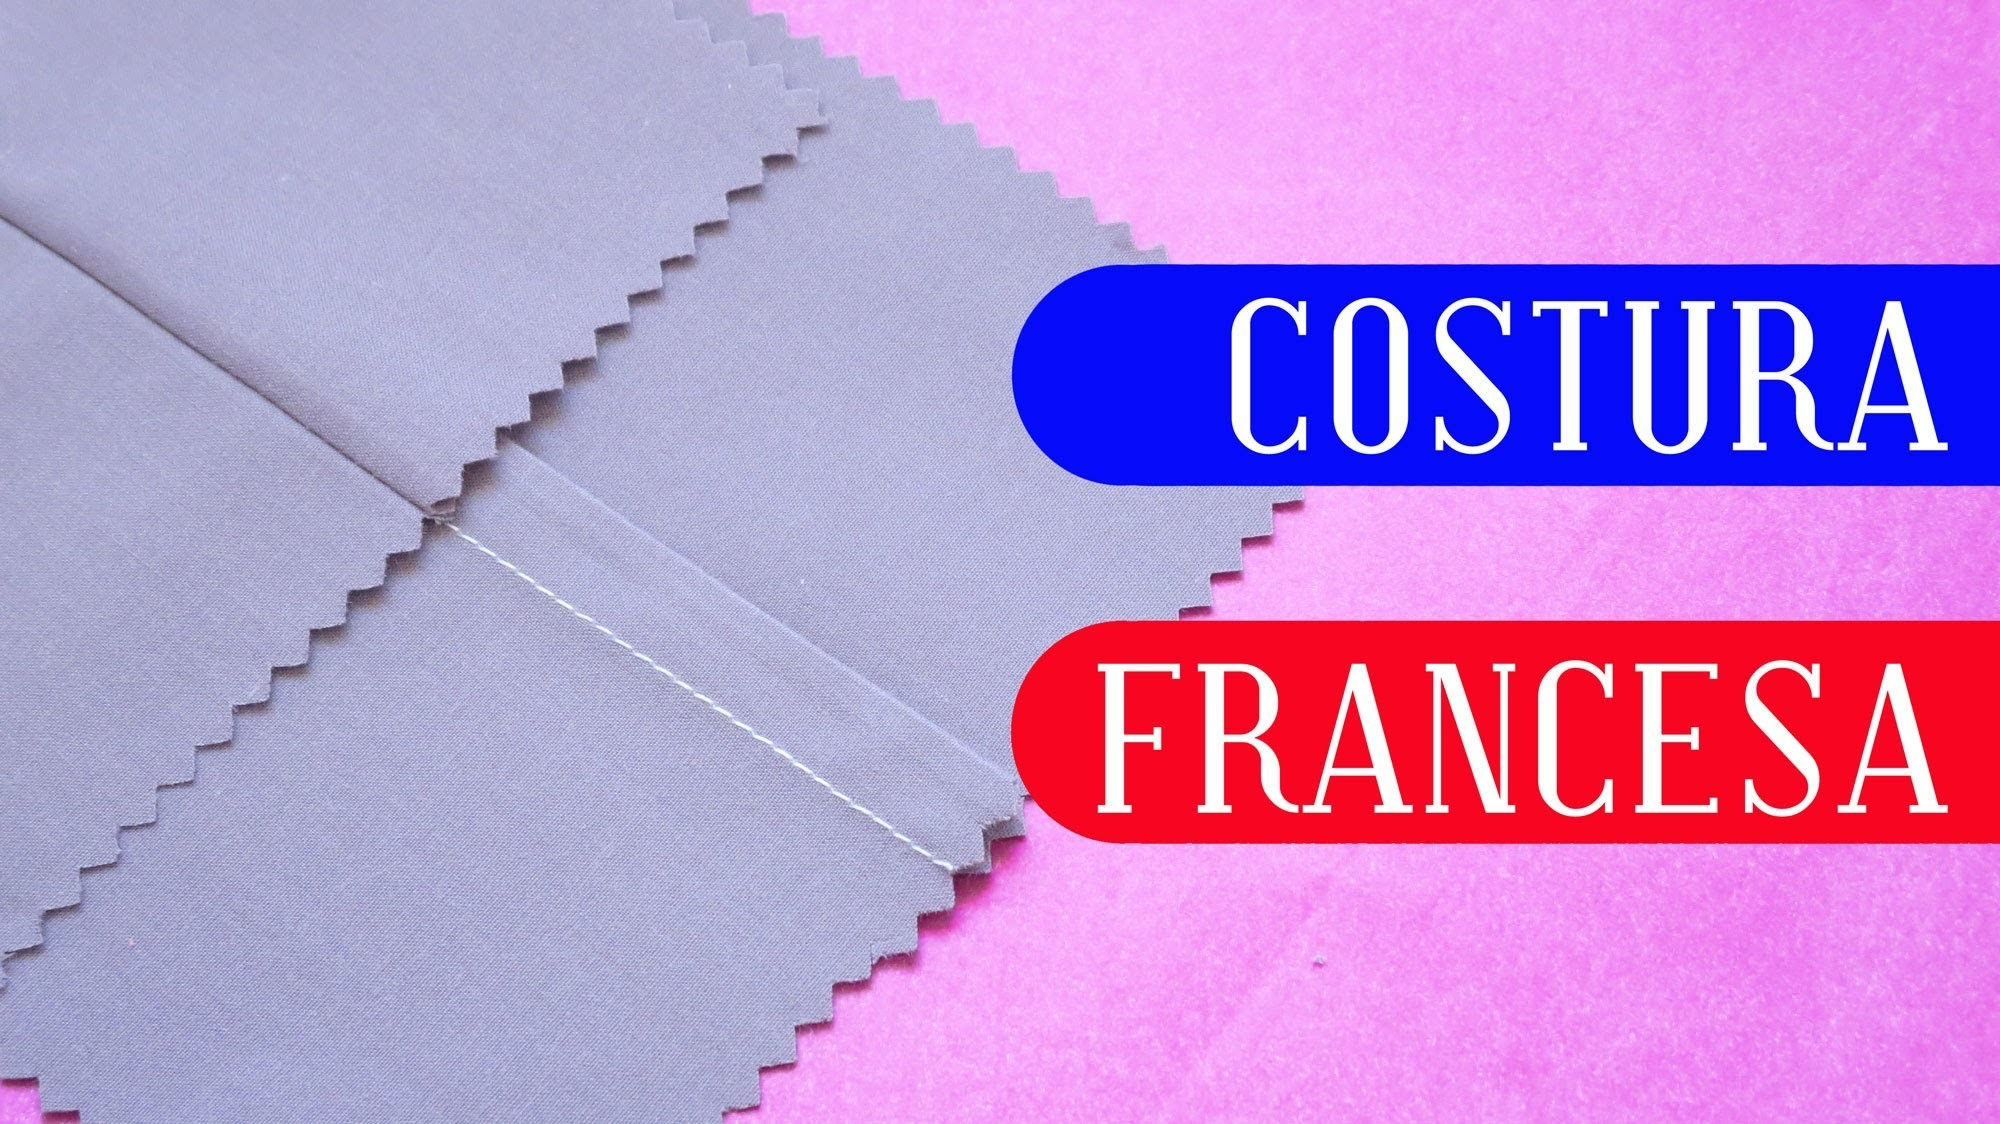 Tutorial: Costura francesa